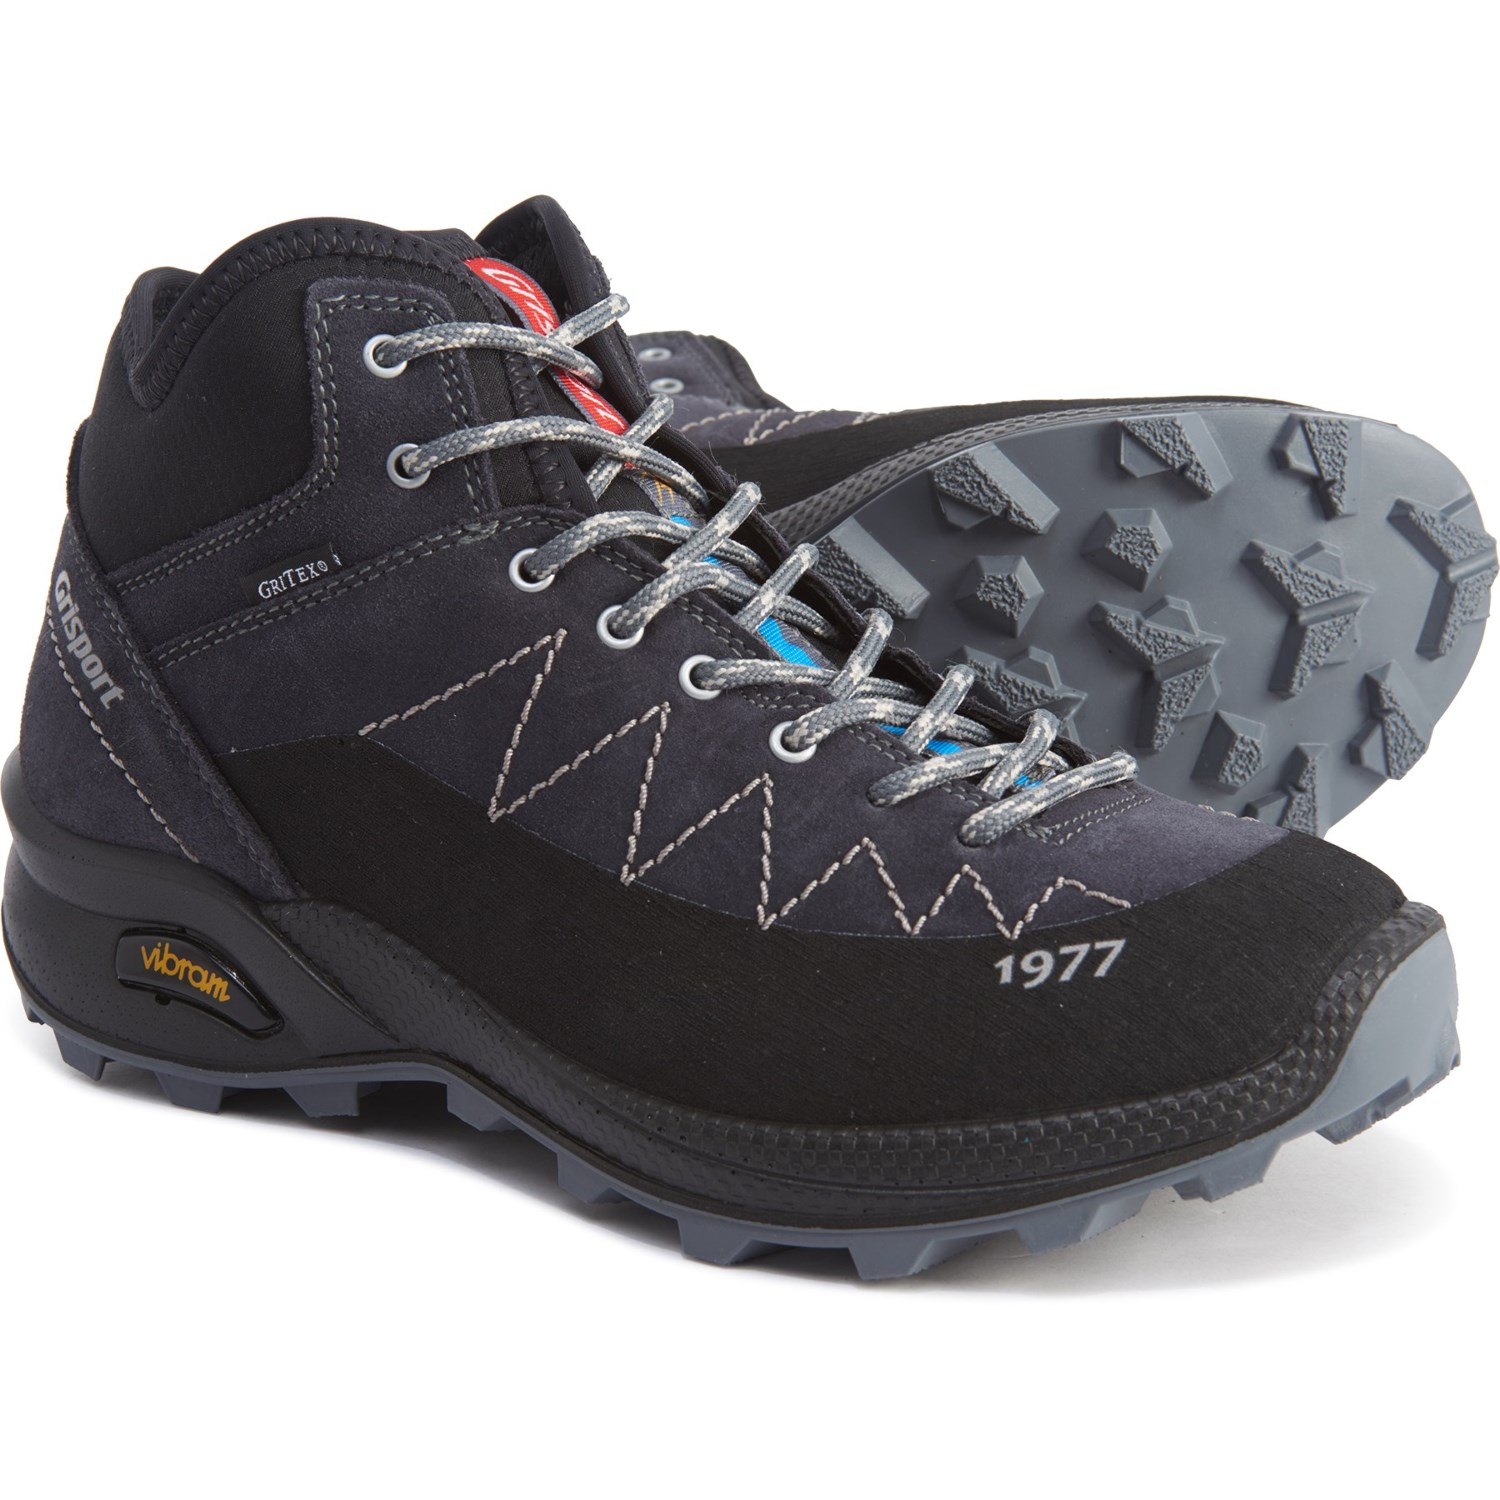 4b7127a8ec0 Grisport Made in Europe Vesuvio Hiking Boots - Waterproof (For Men and  Women)